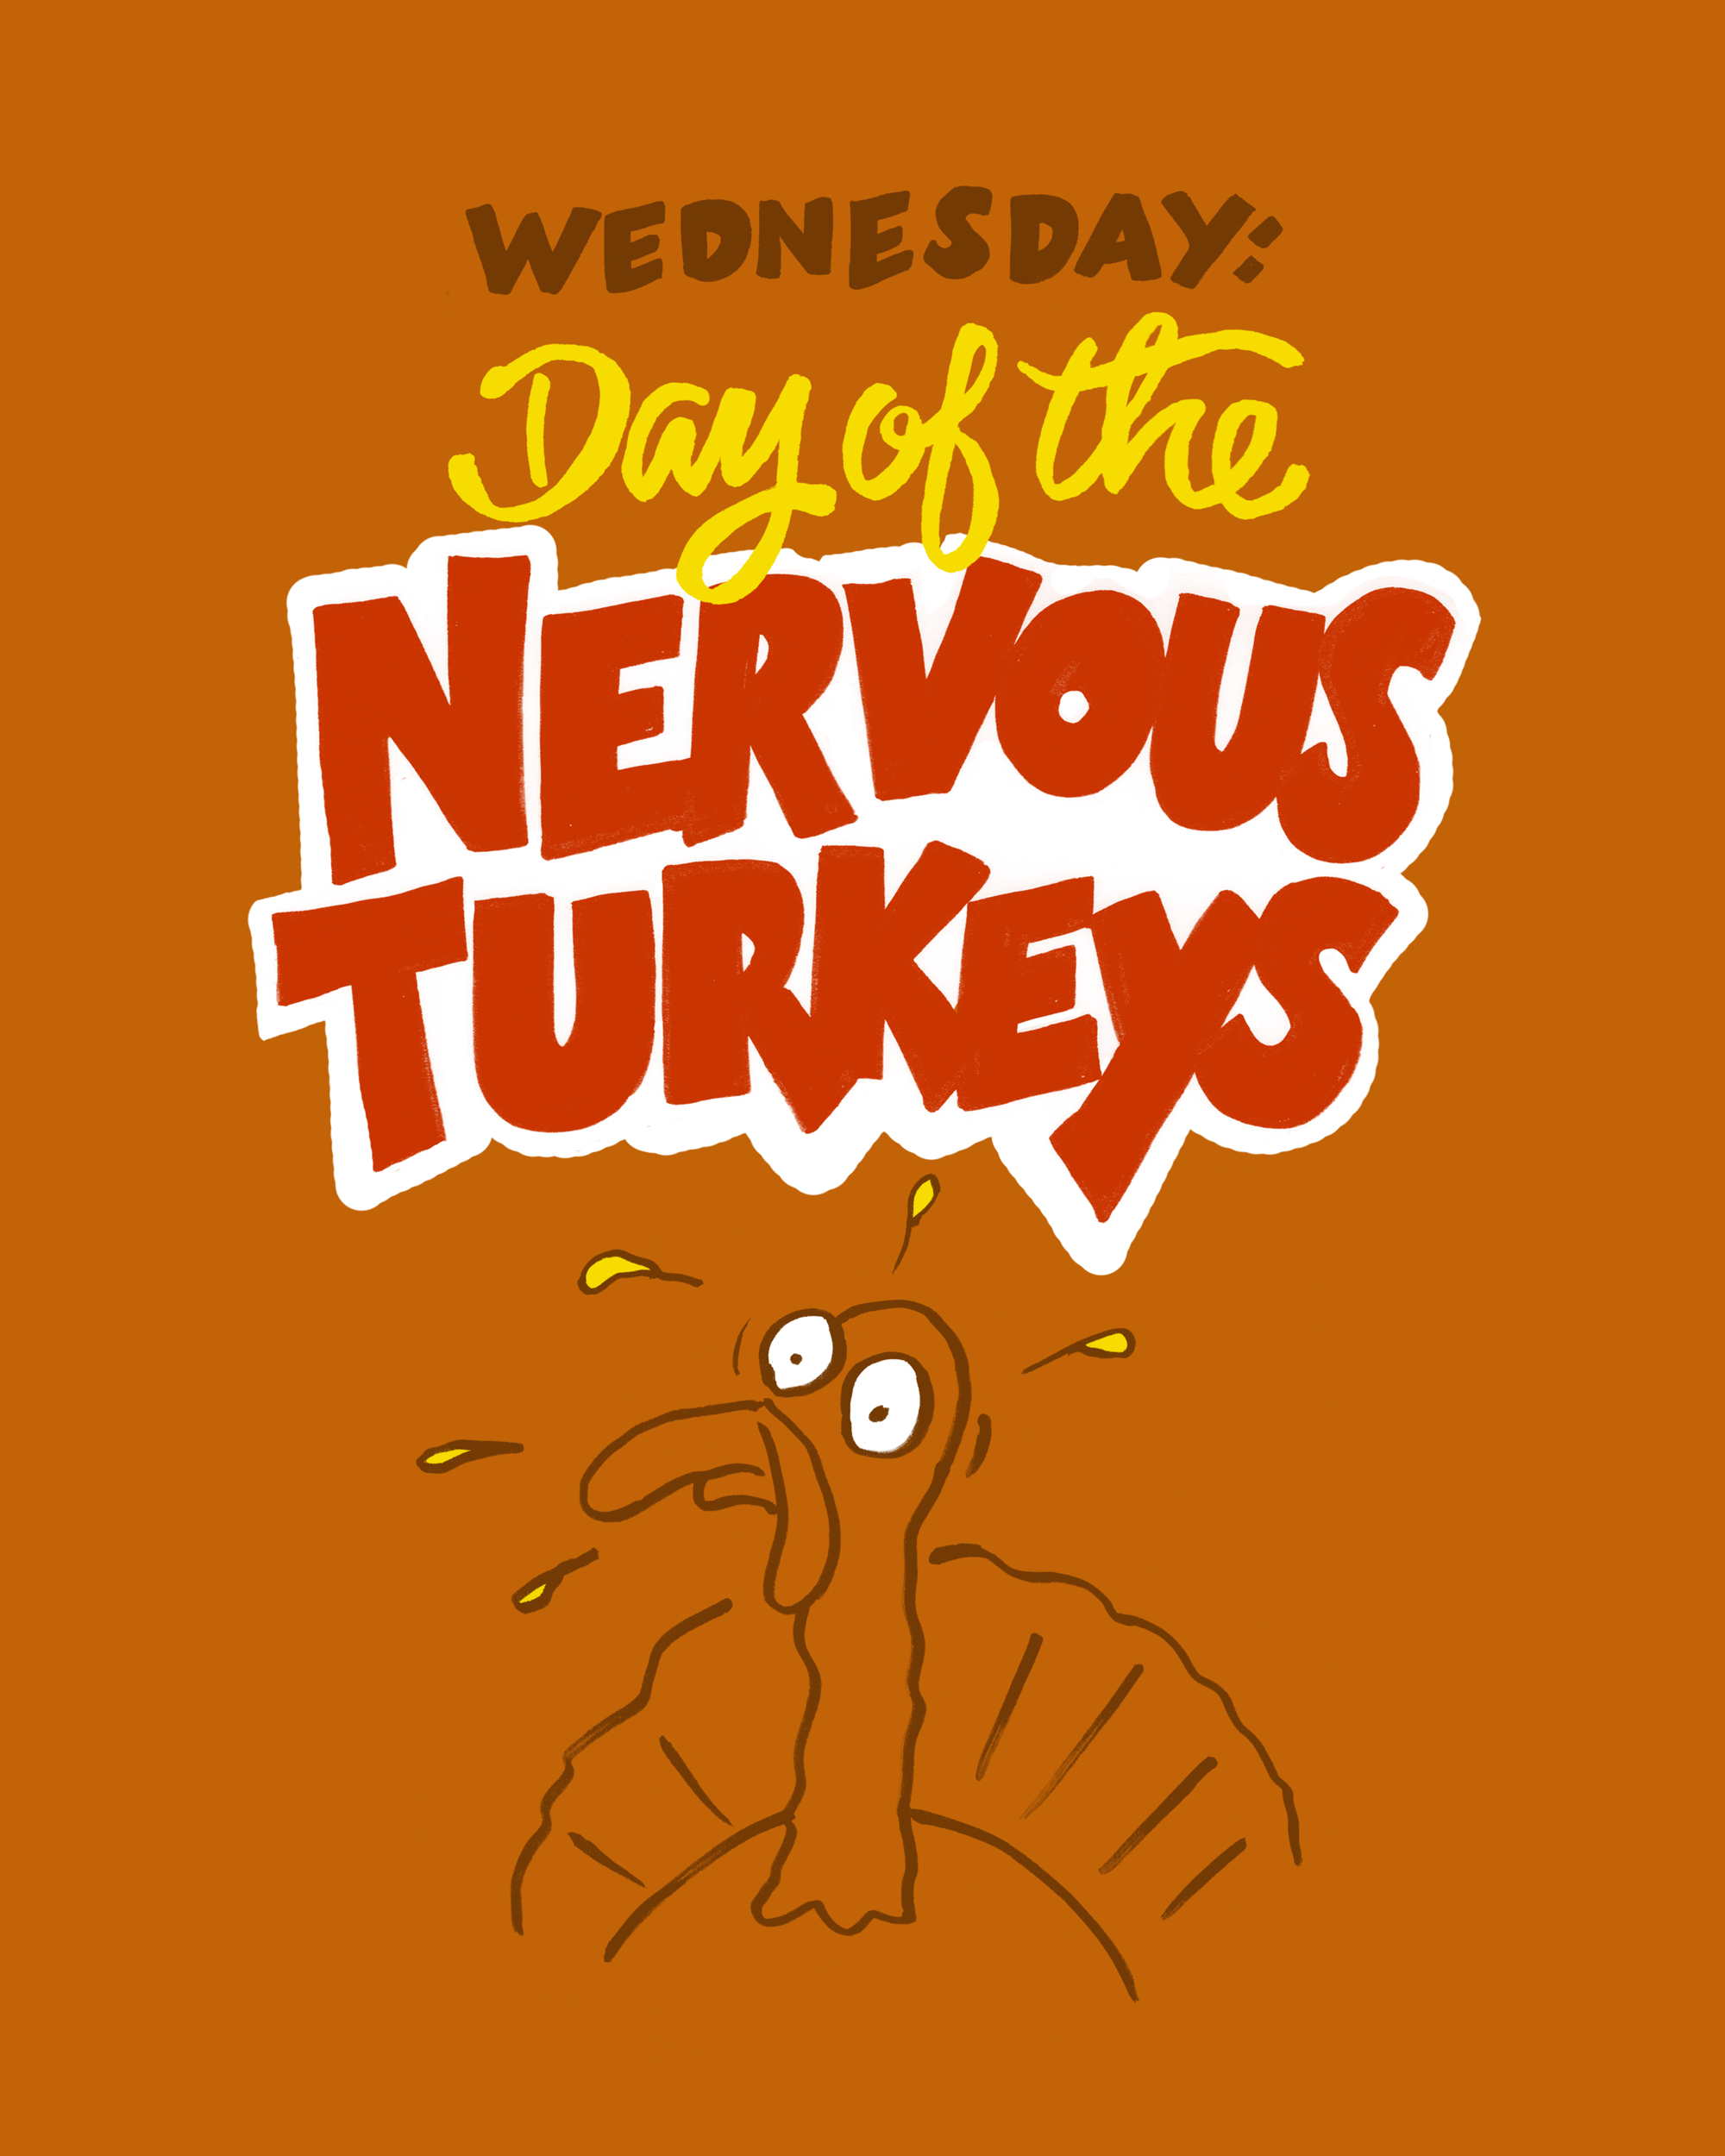 wednesday day of the nervous turkeys